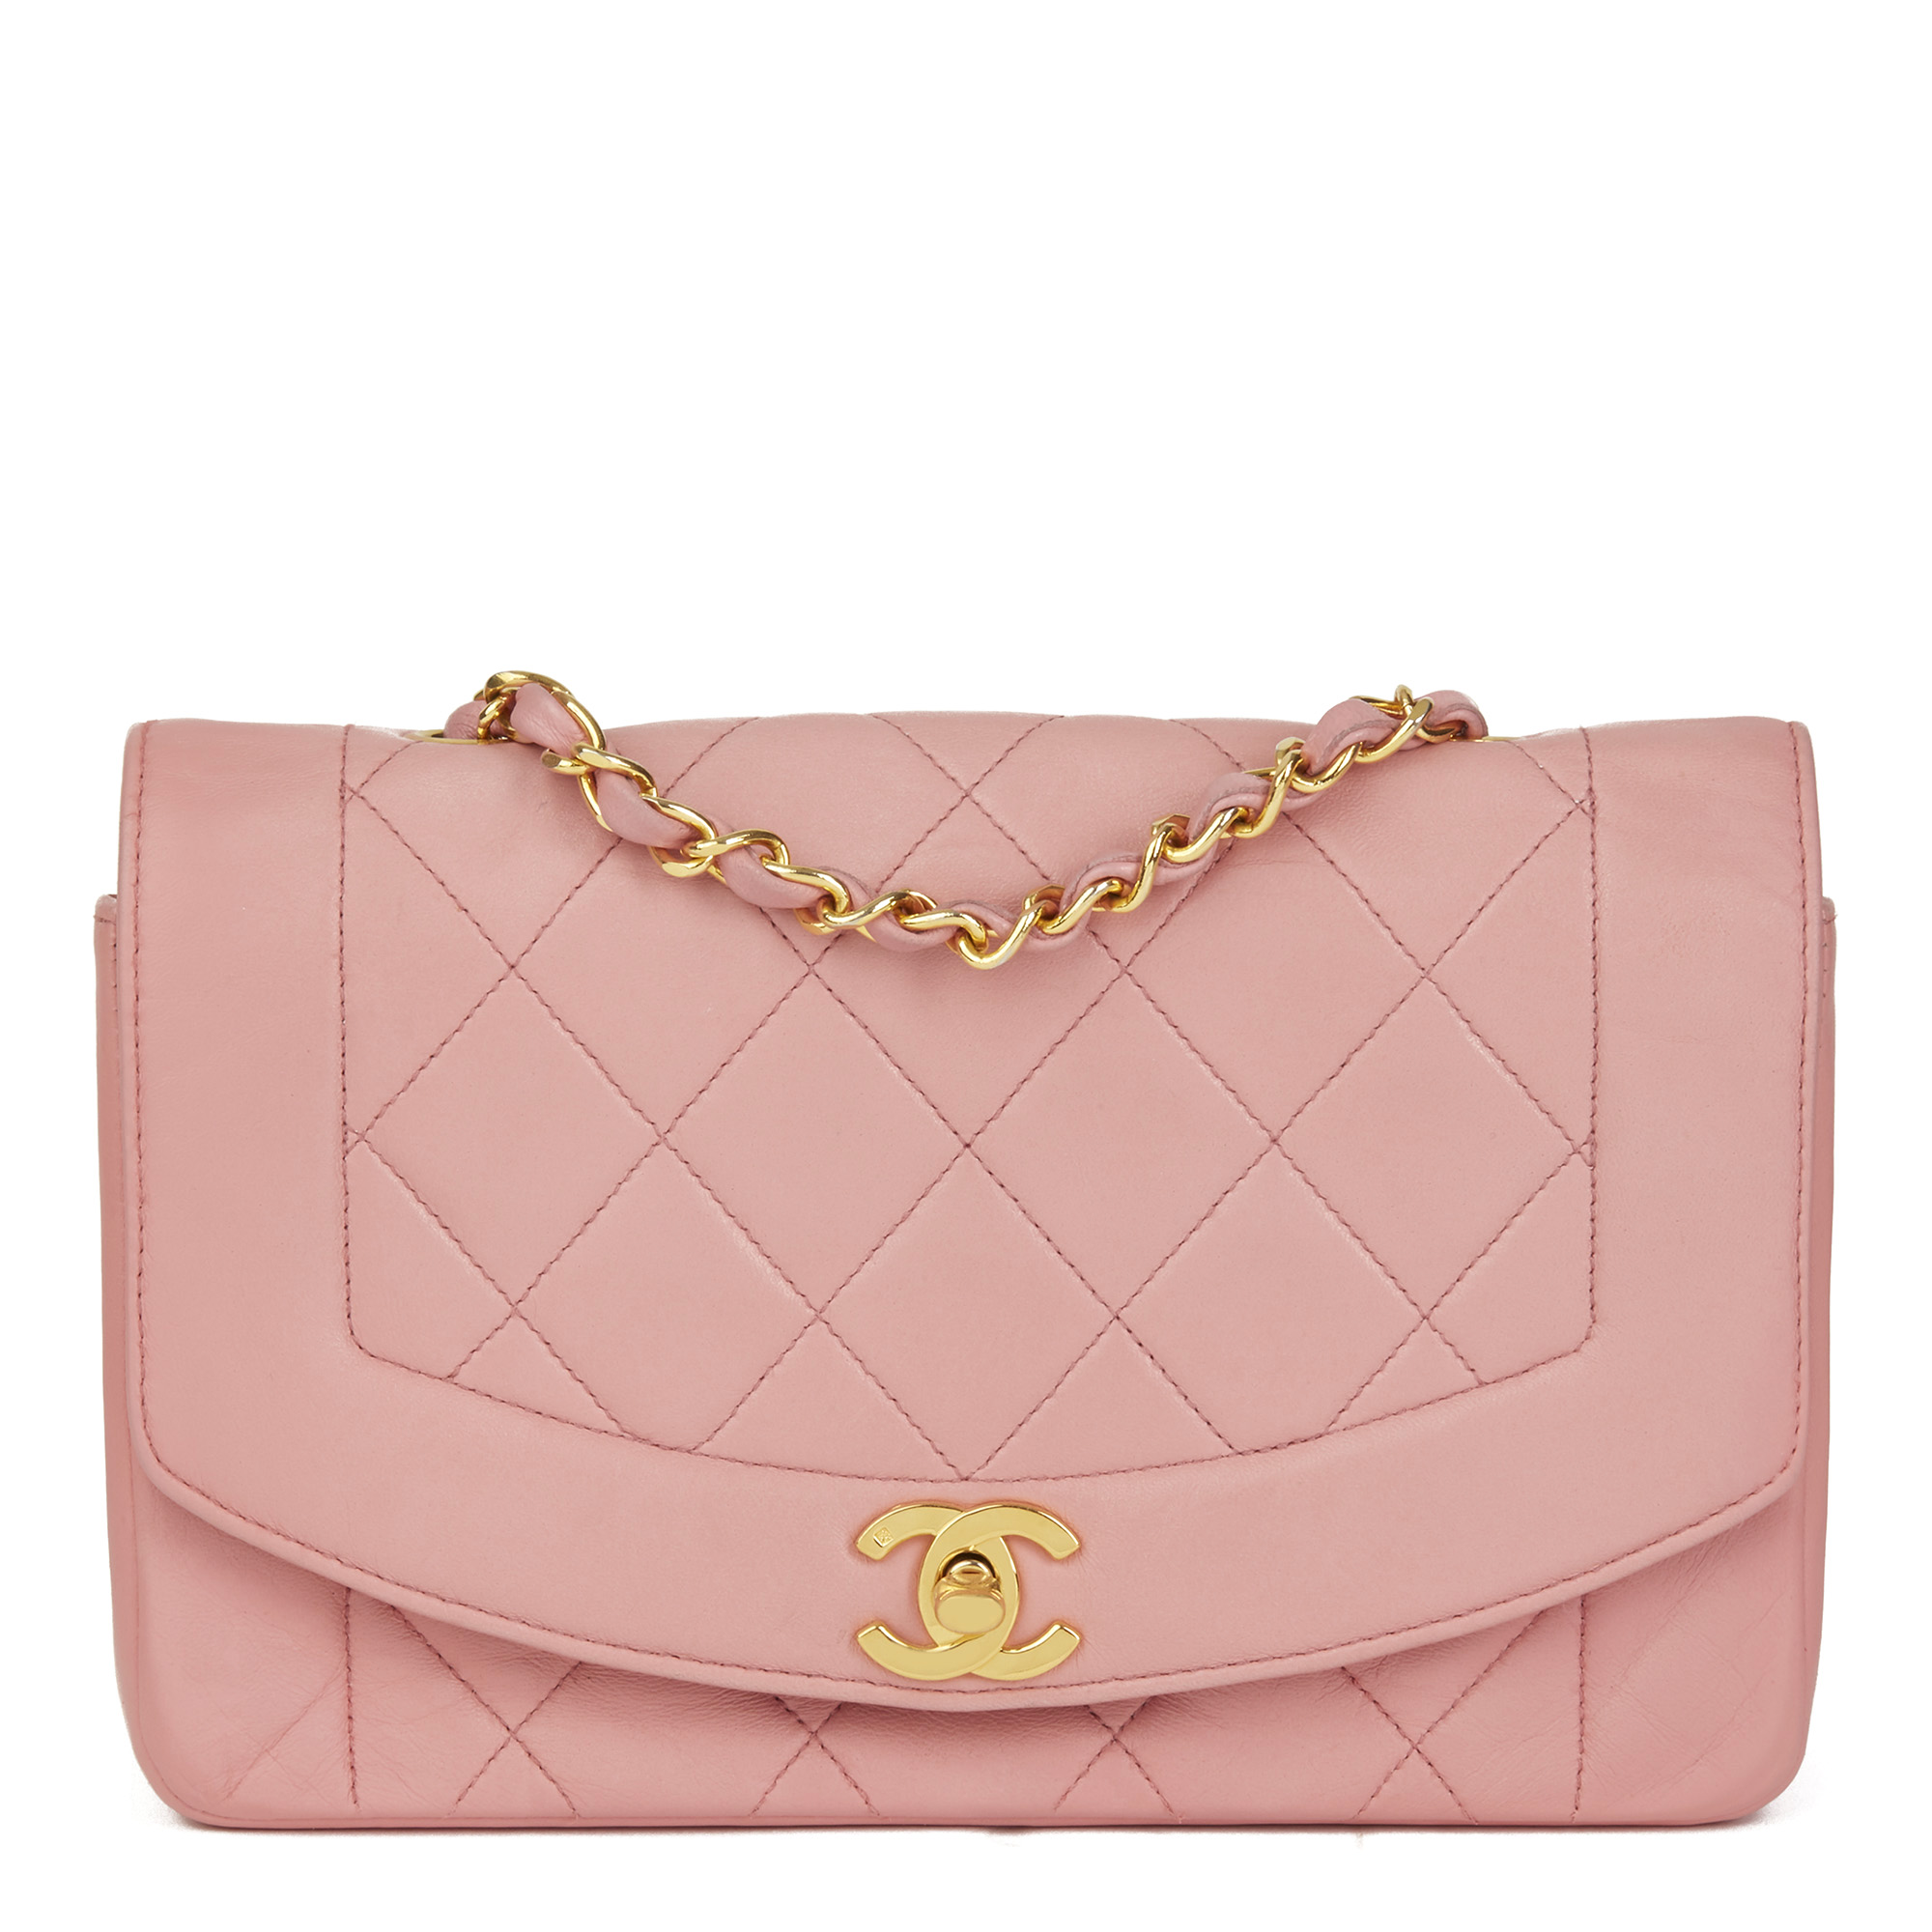 4dcb6d935cda Chanel Pink Quilted Lambskin Vintage Small Diana Classic Single Flap Bag